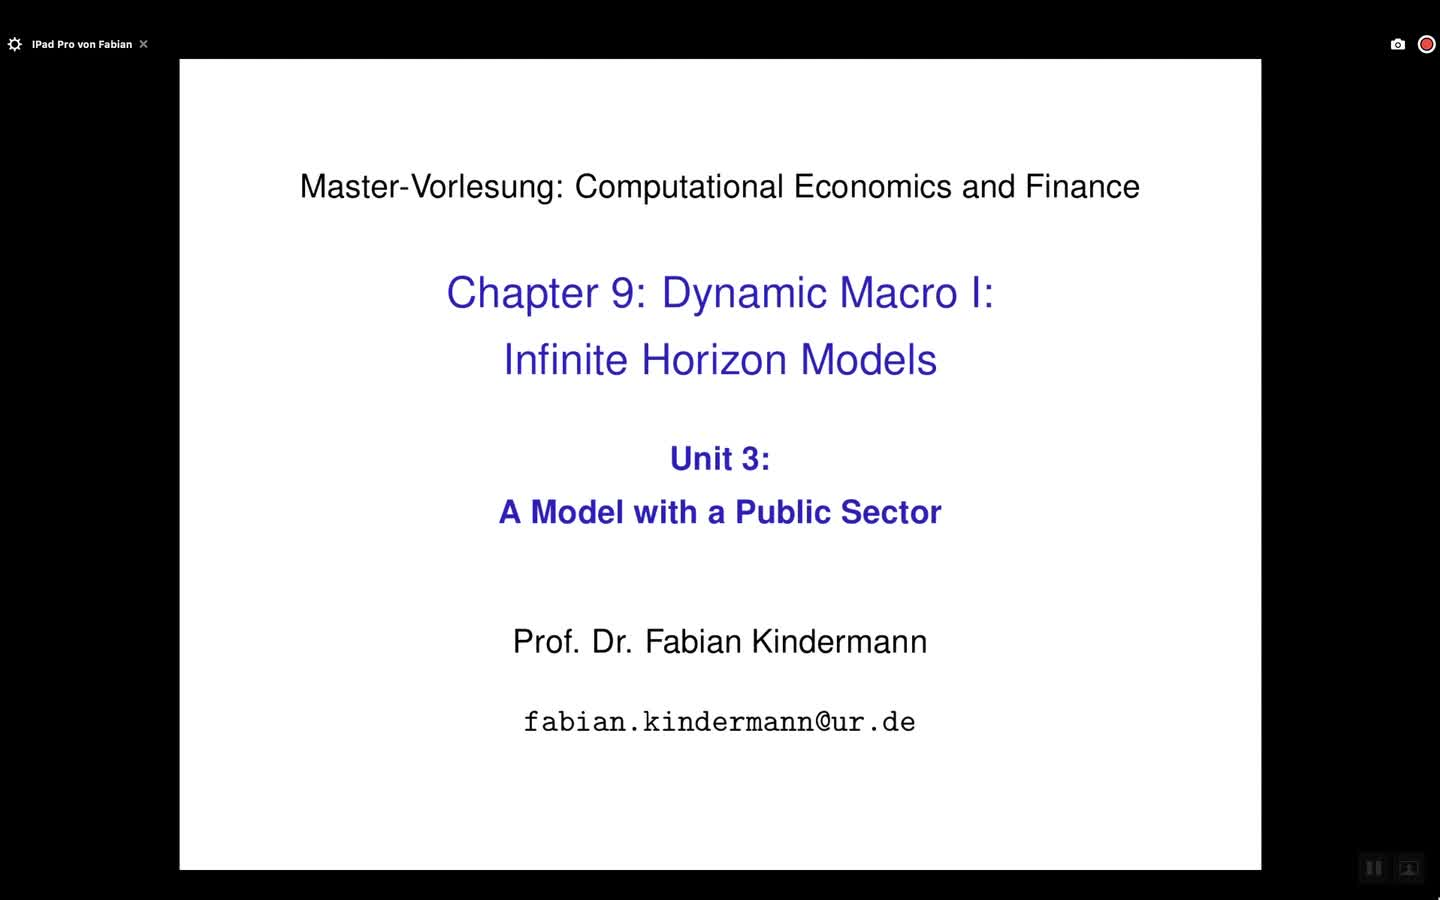 Chapter 9 - Unit 3 - A Model with a Public Sector